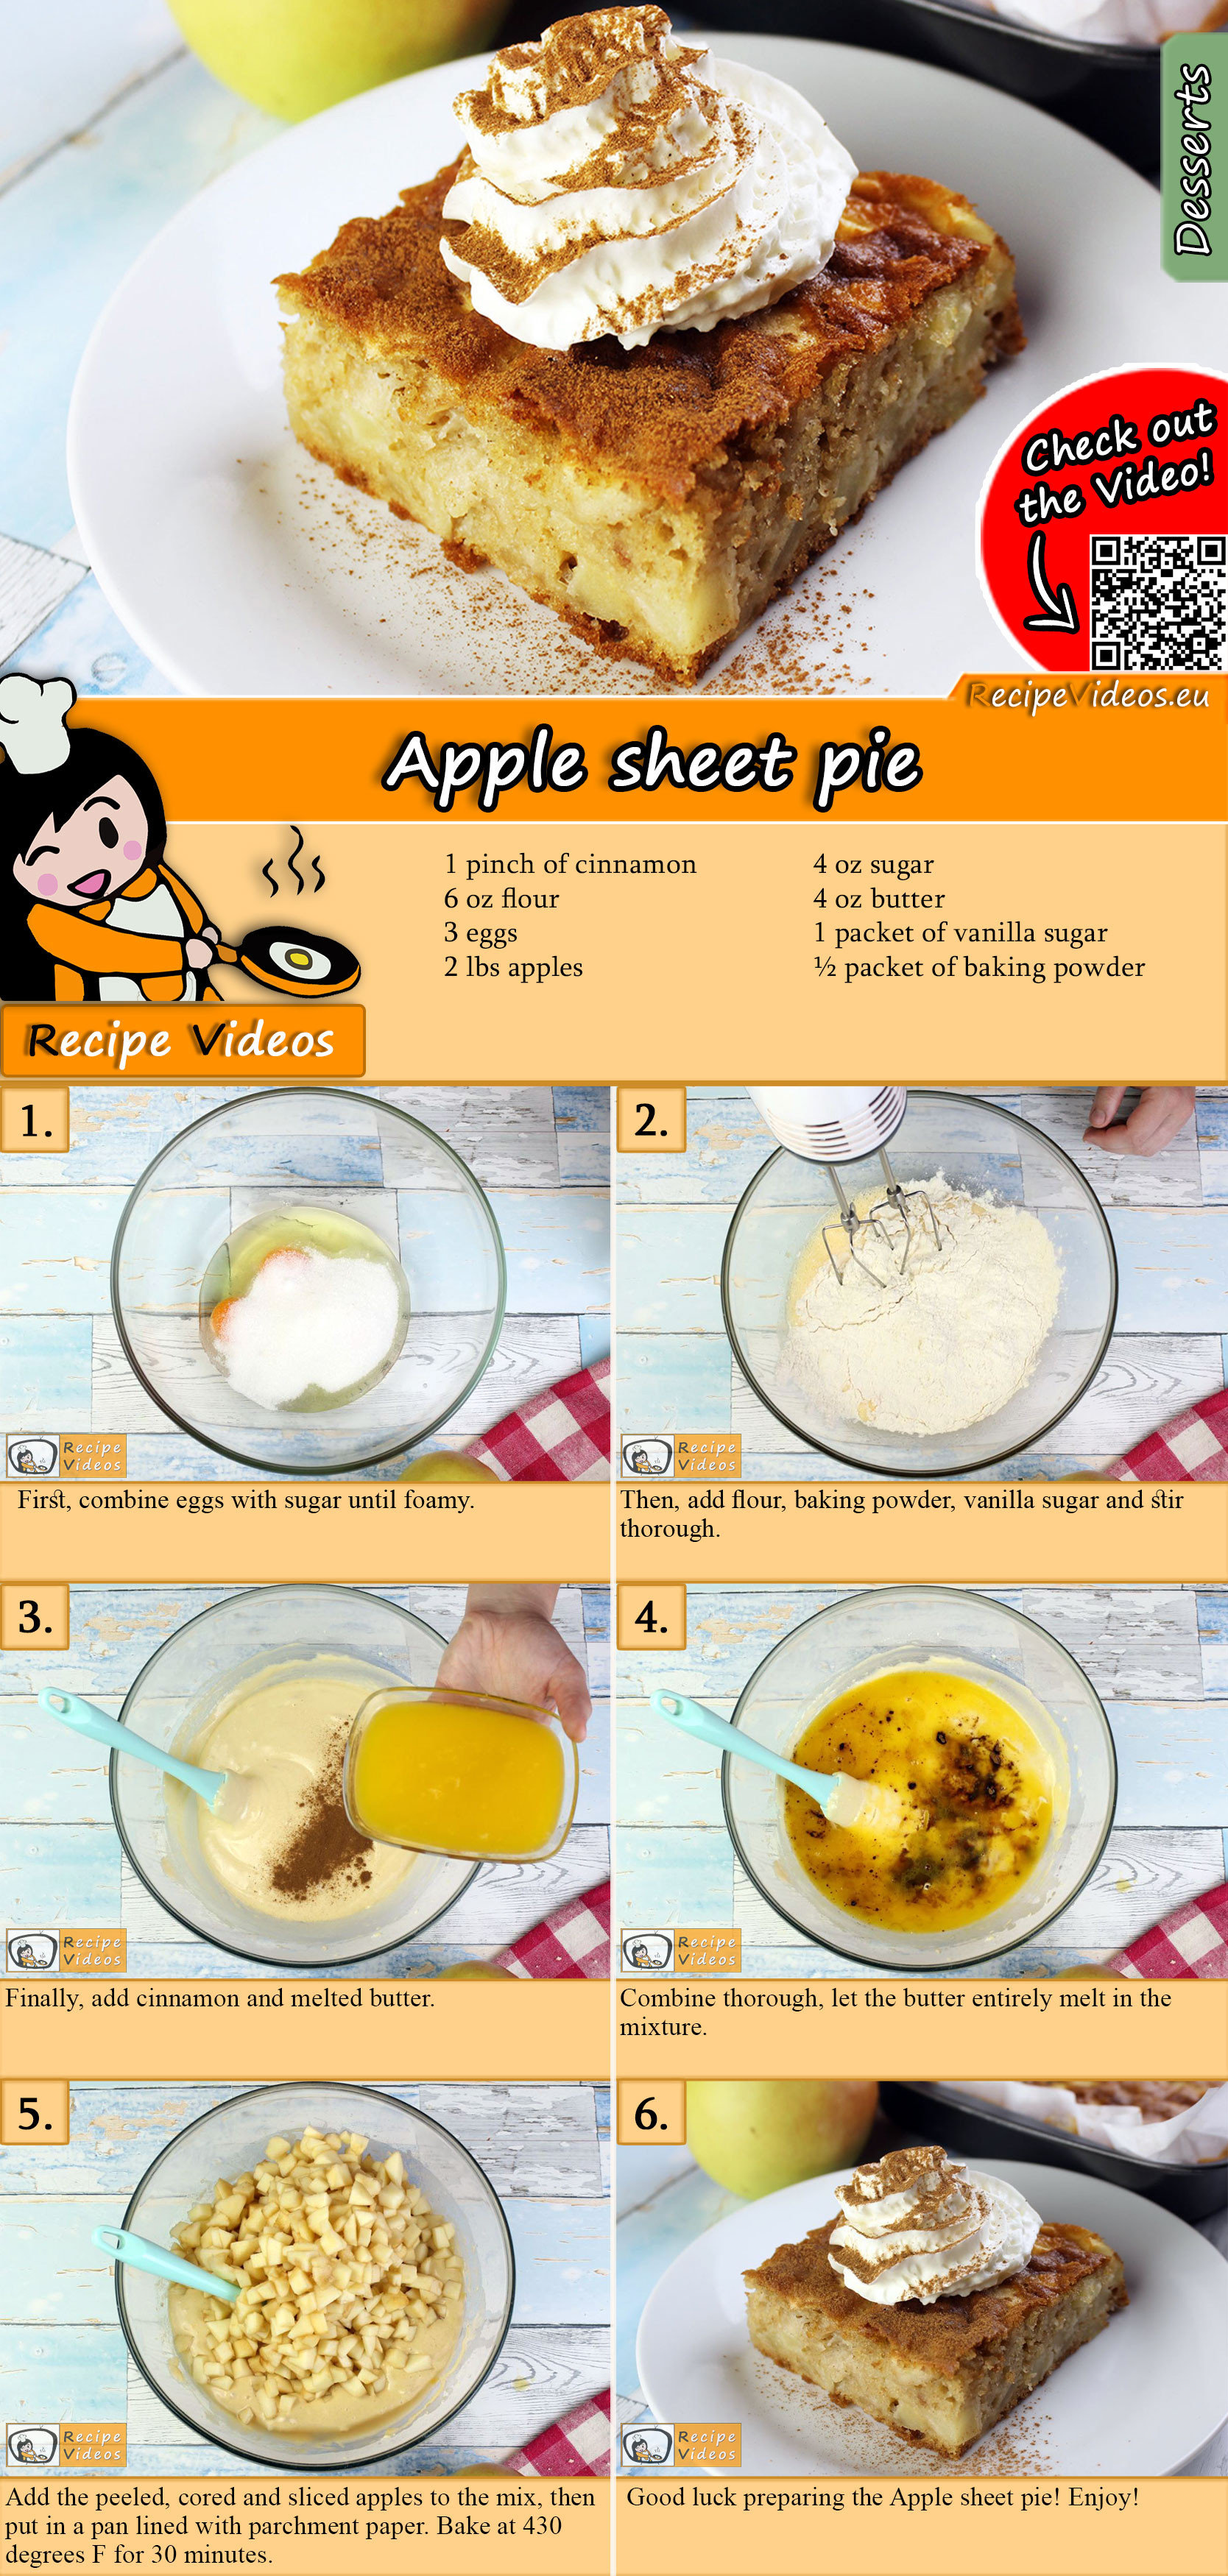 Apple sheet pie recipe with video